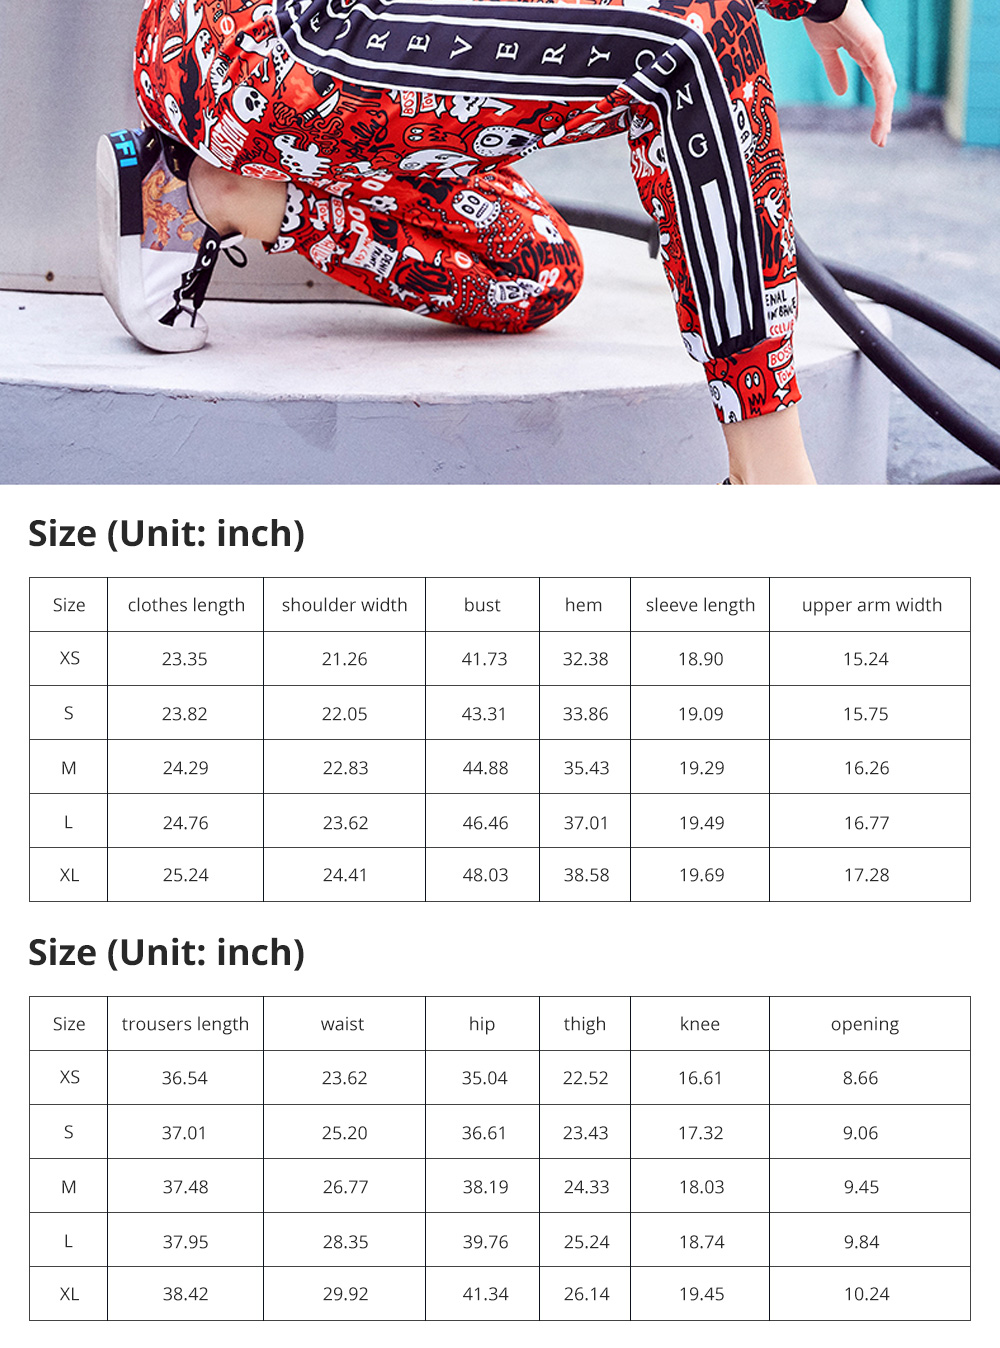 Women's Tracksuit with Vibrant Color 2 Piece Sets Casual Hoodie Suit with Close-Up Sleeve and Leg Openings 6